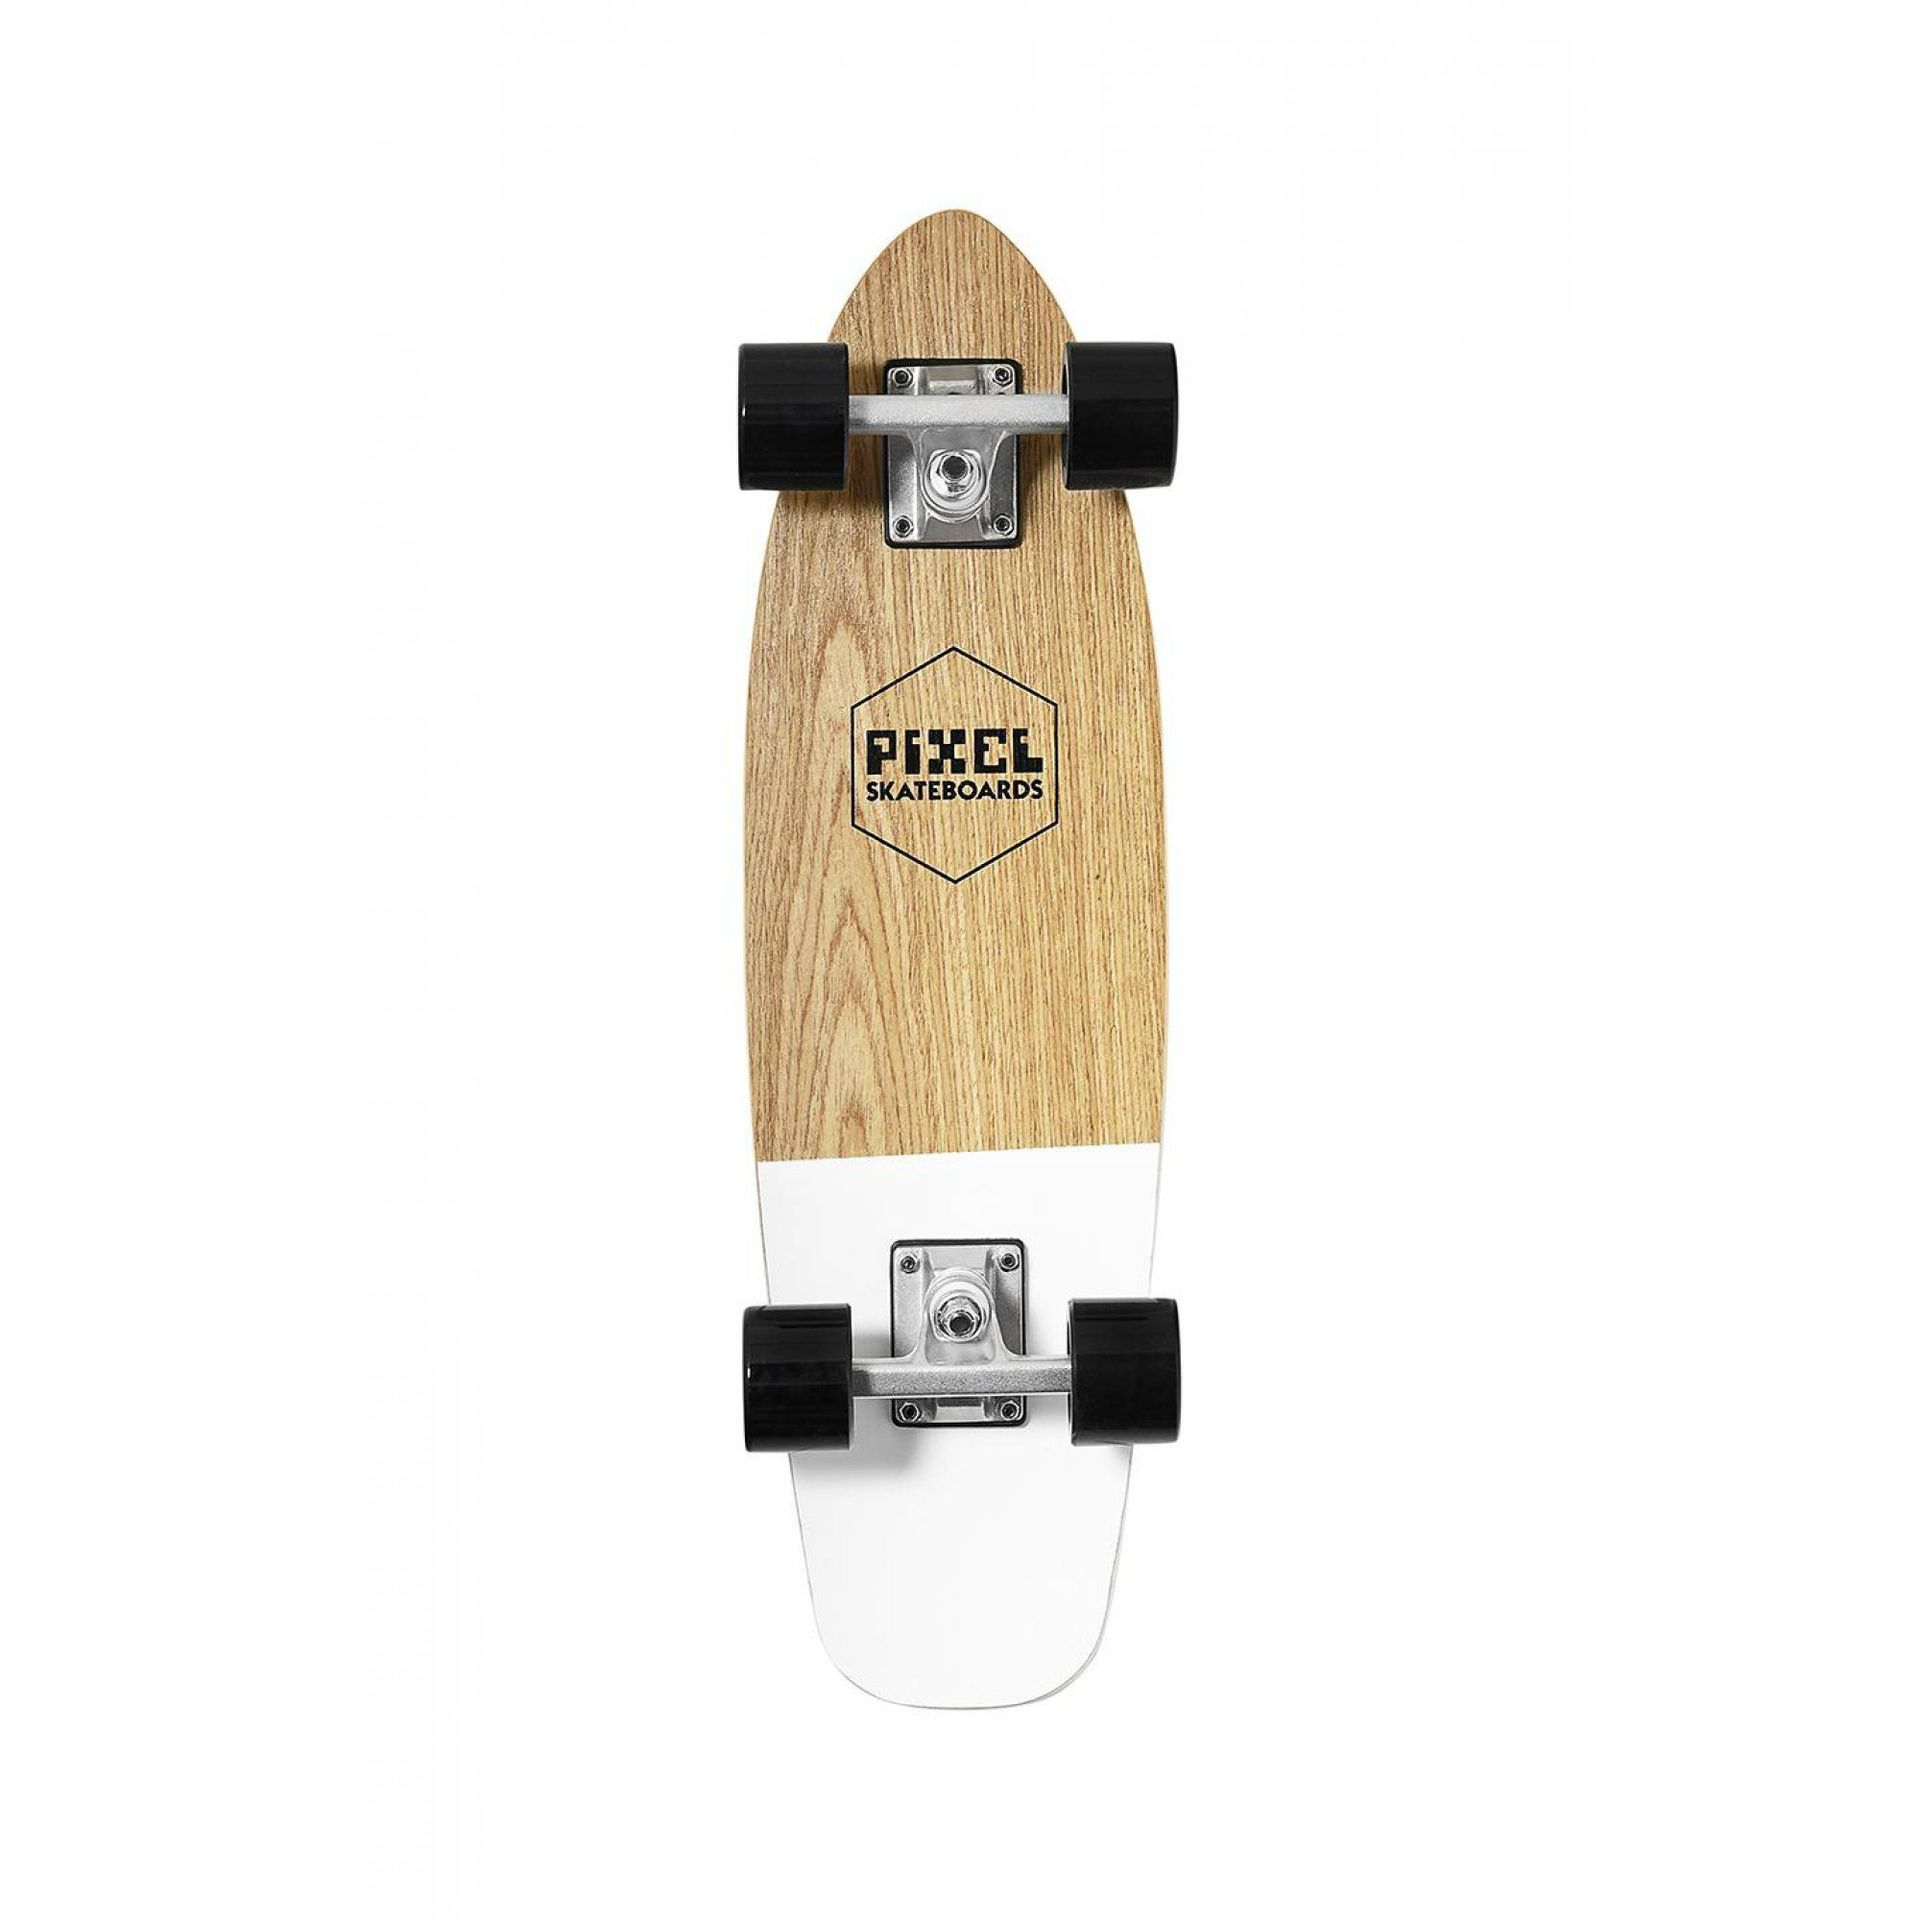 FISHBOARD PIXEL WOODY NATURAL WHITE 1